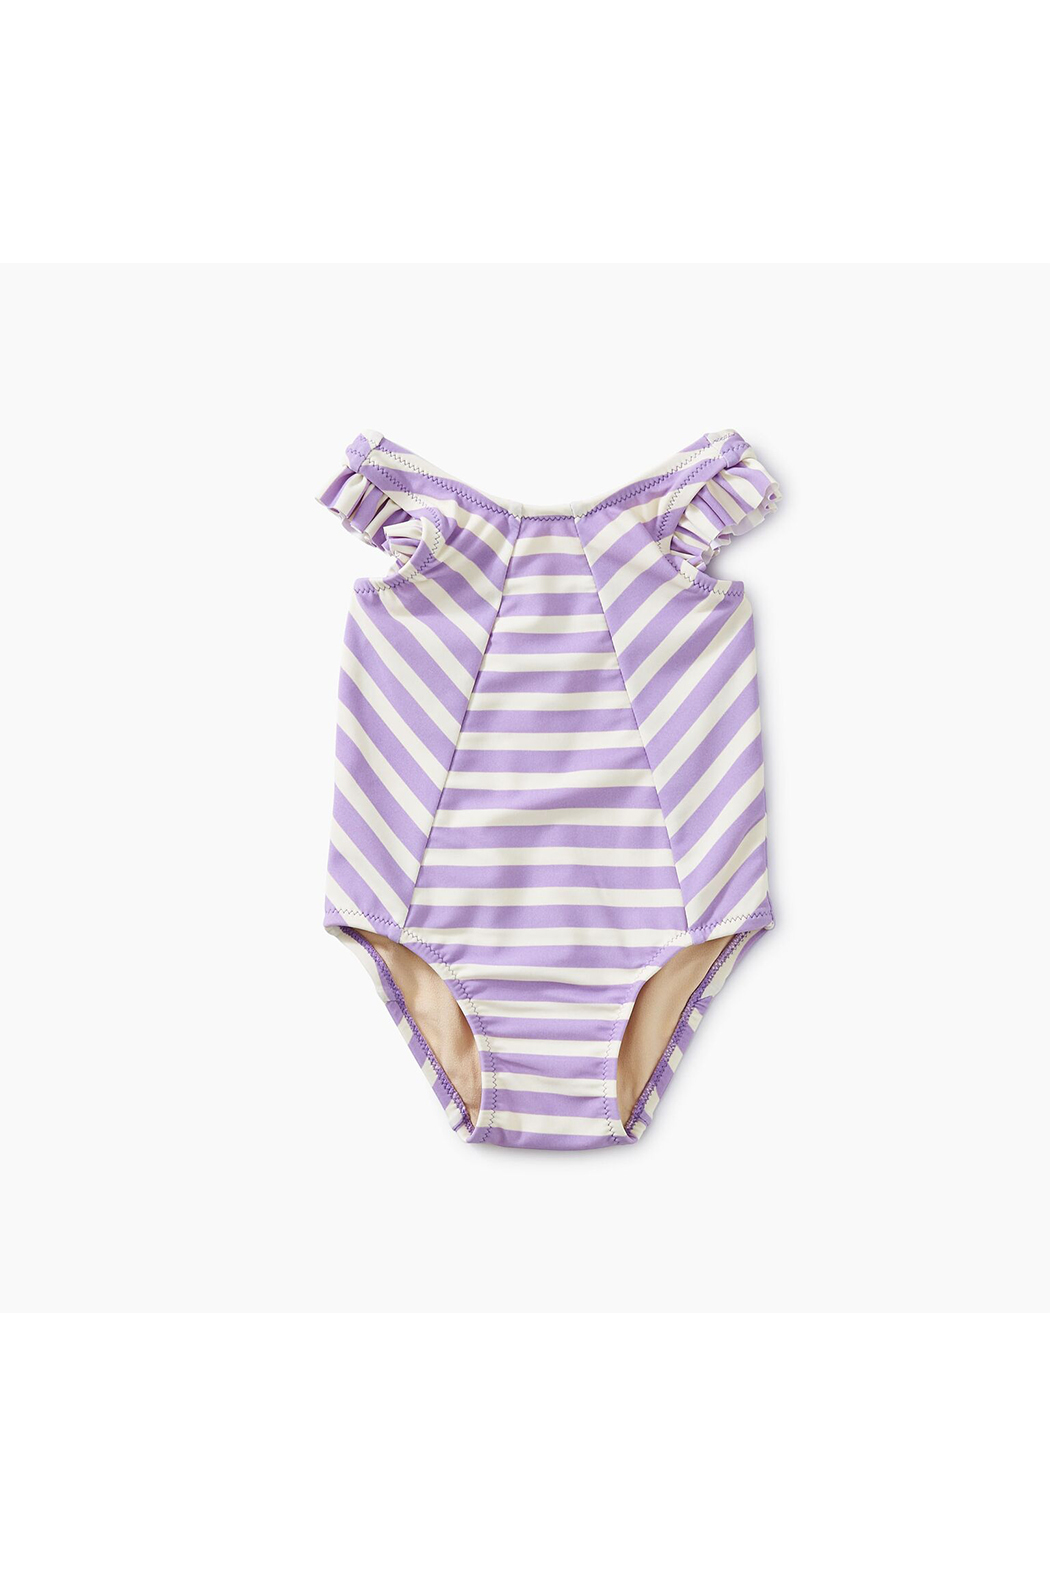 Tea Collection Striped Baby One-Piece - Main Image